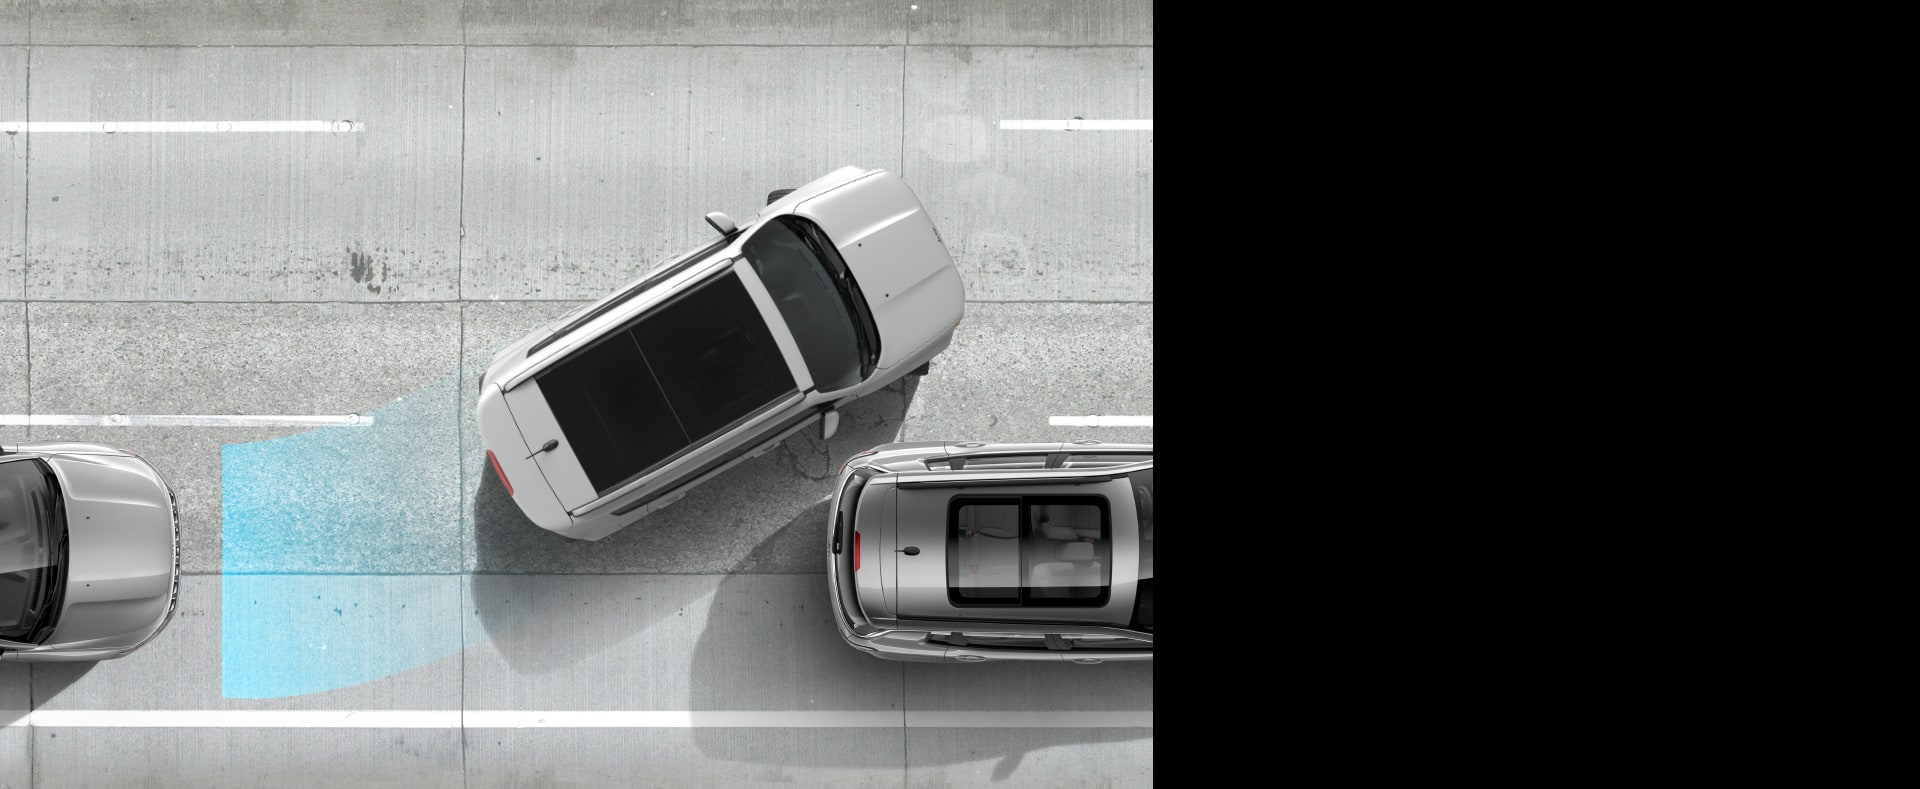 Illustration of sensors emanating from the rear of 2020 Jeep Renegade as it reverses out of a parking spot just as another vehicle appears to pass behind it.